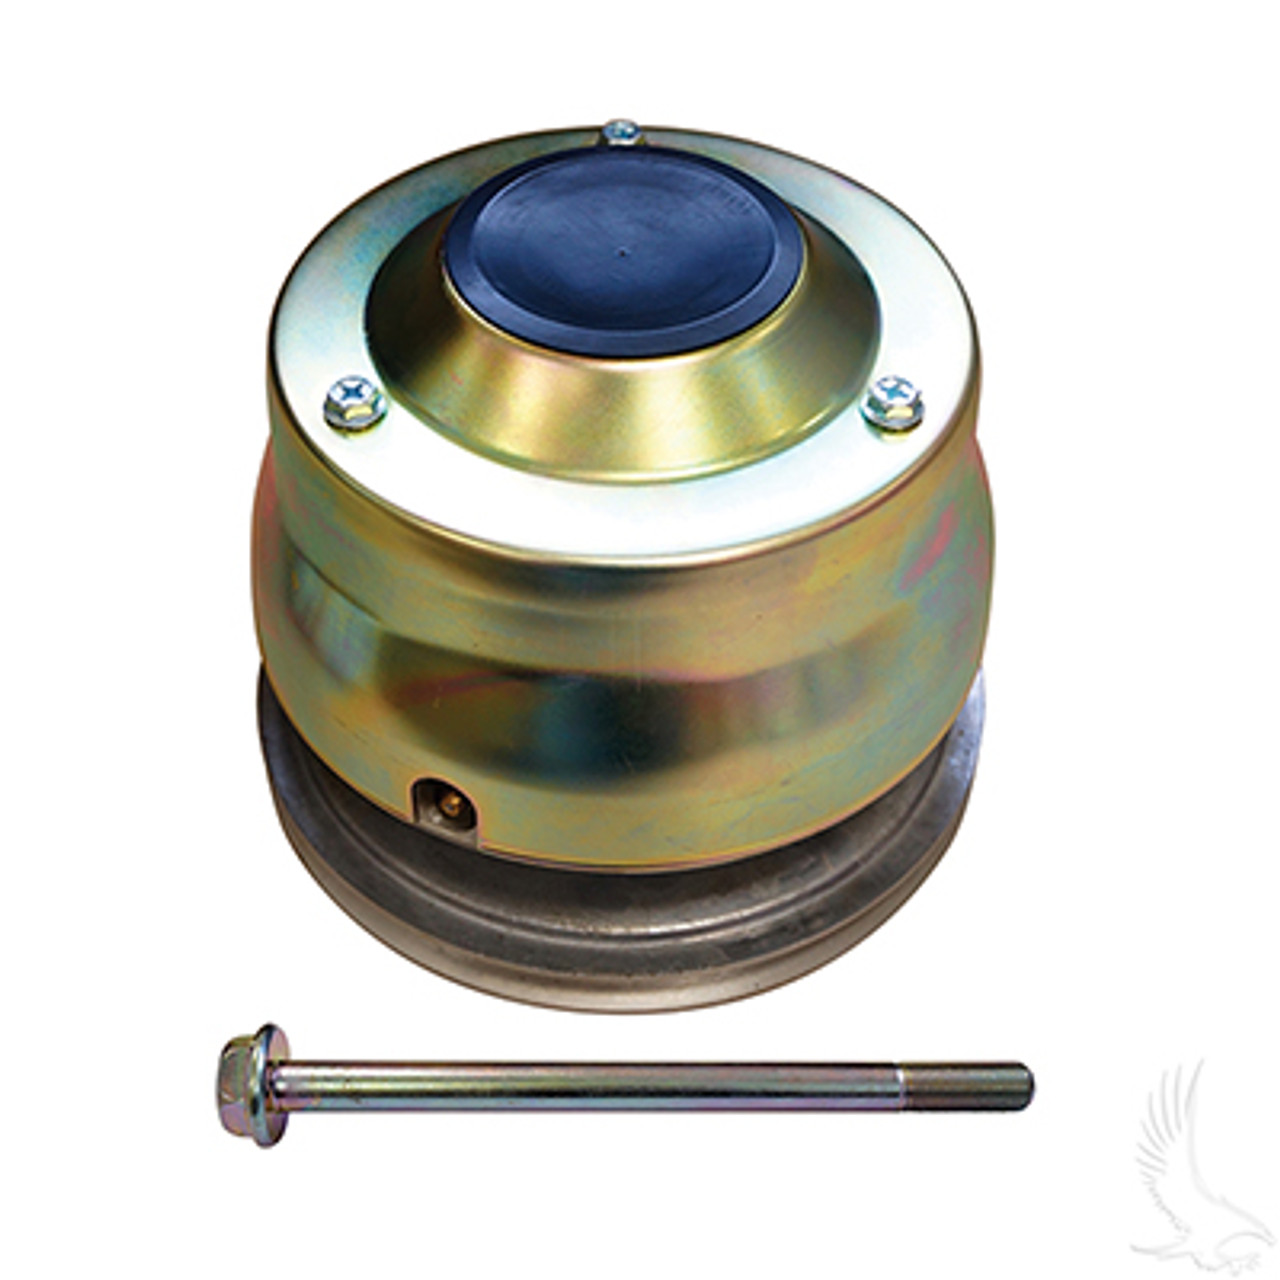 yamaha g29 drive golf cart primary clutch 2007  [ 1280 x 1280 Pixel ]